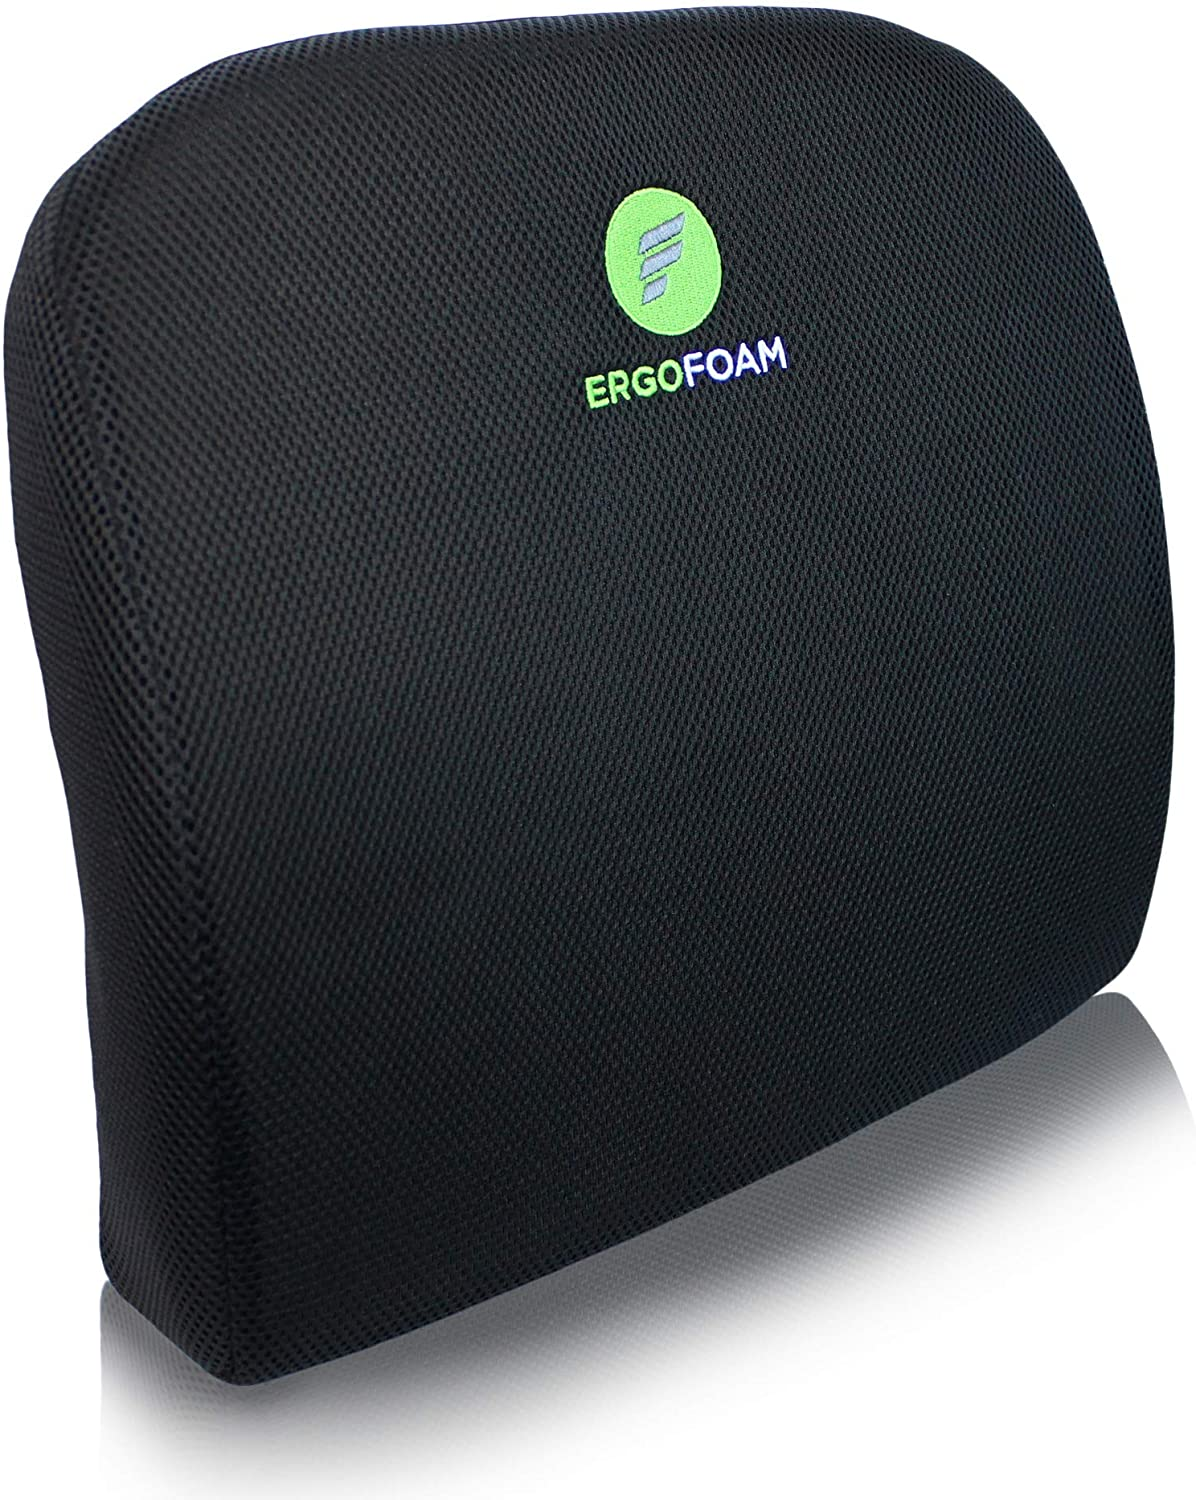 ErgoFoam Lumbar Support Pillow for Chair Premium Breathable Mesh Back Support for Office Chair Most Comfortable Lumbar Cushion in The World for Back Pain